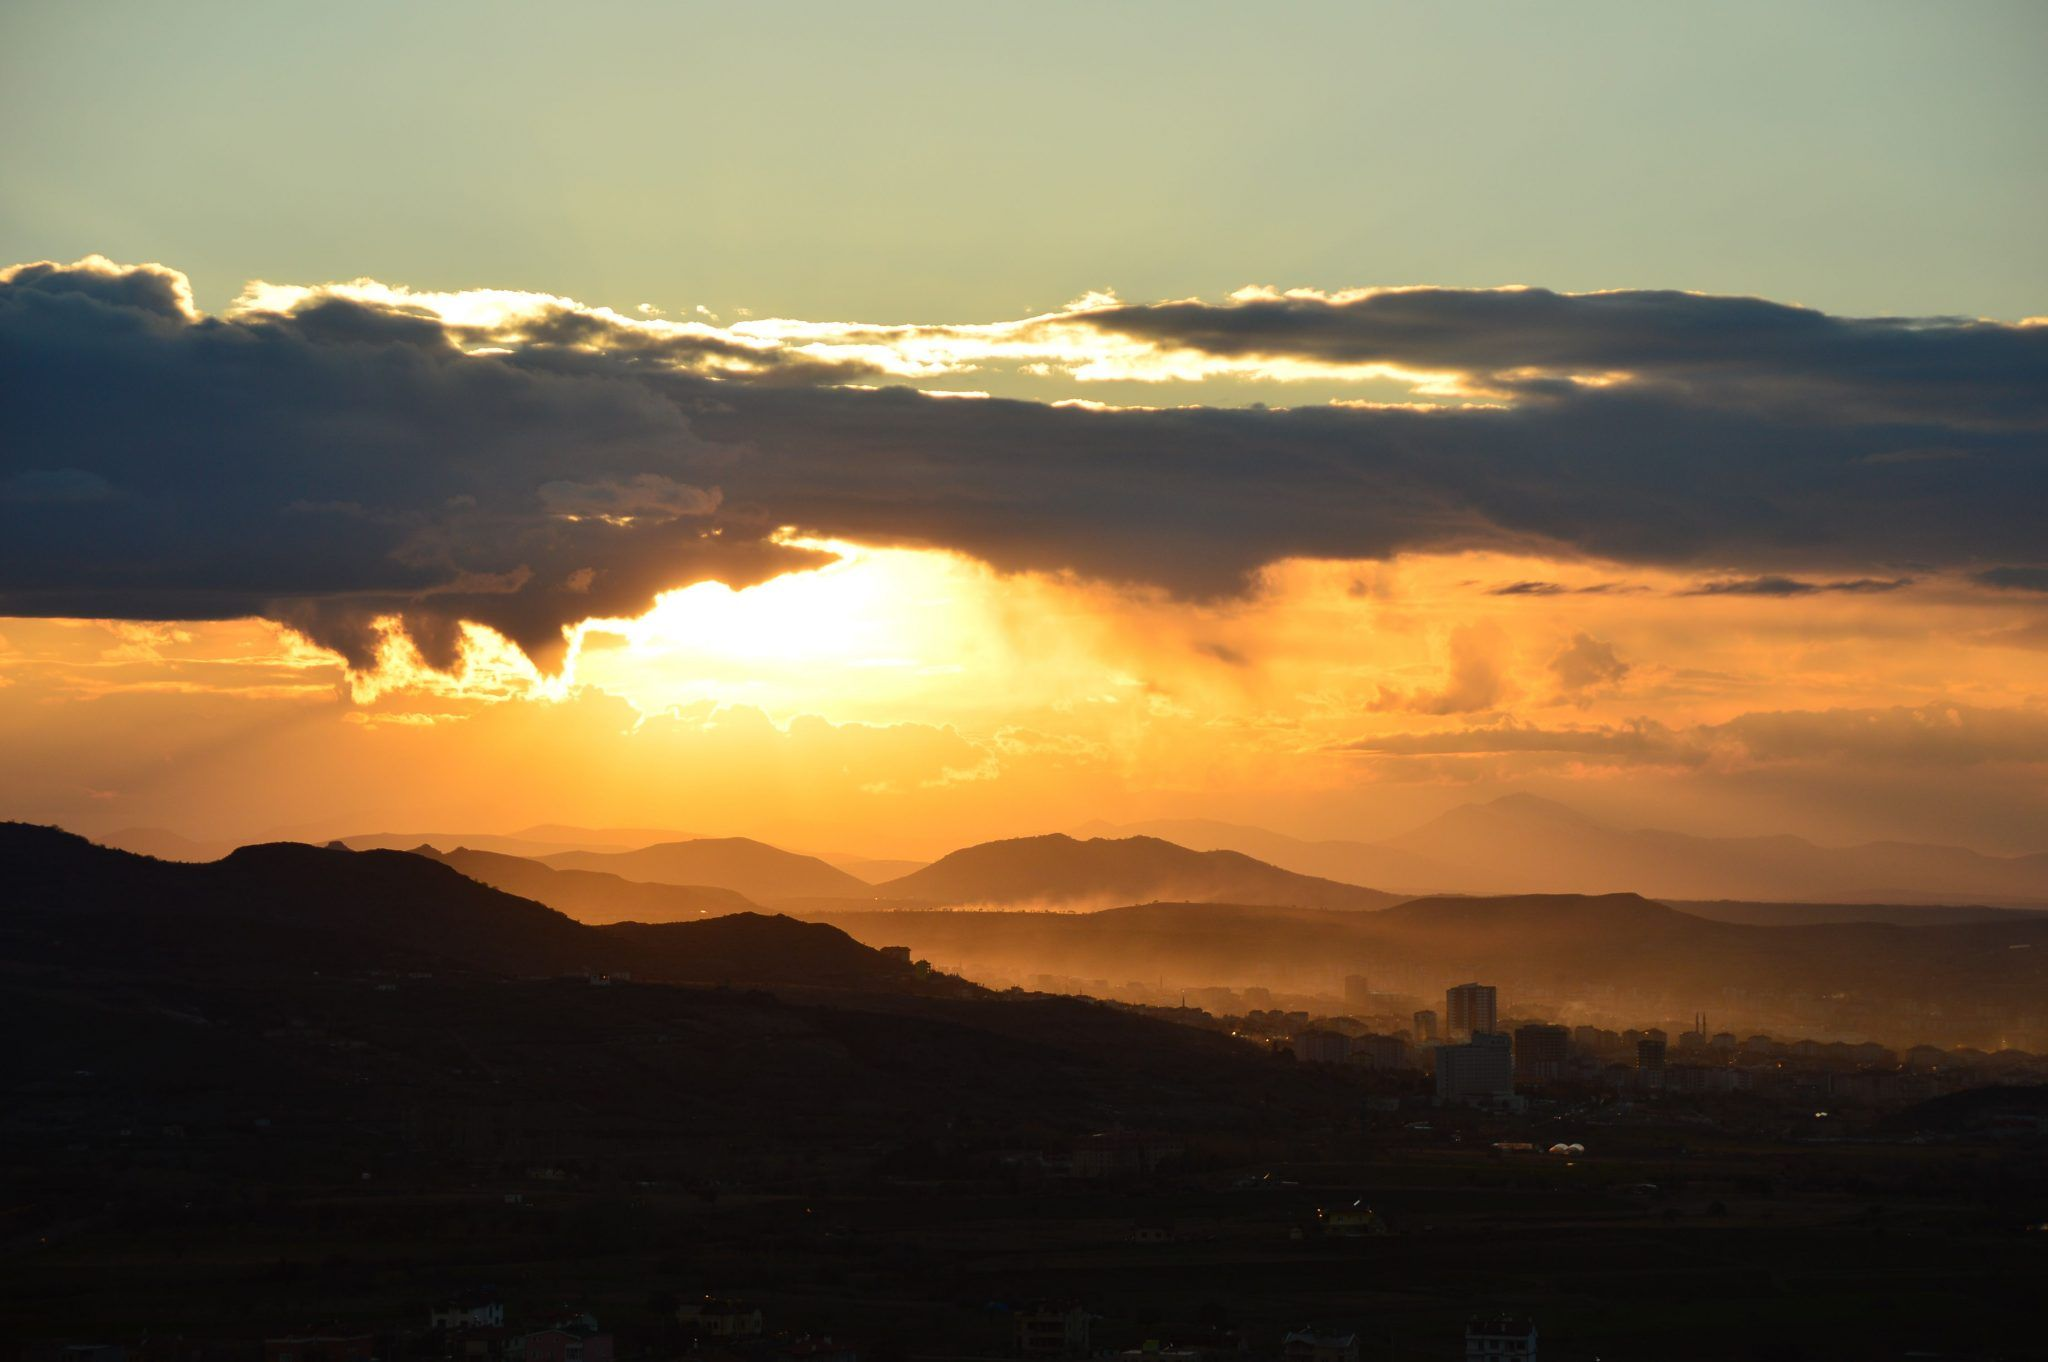 Sunset from the top of Uchisar Castle